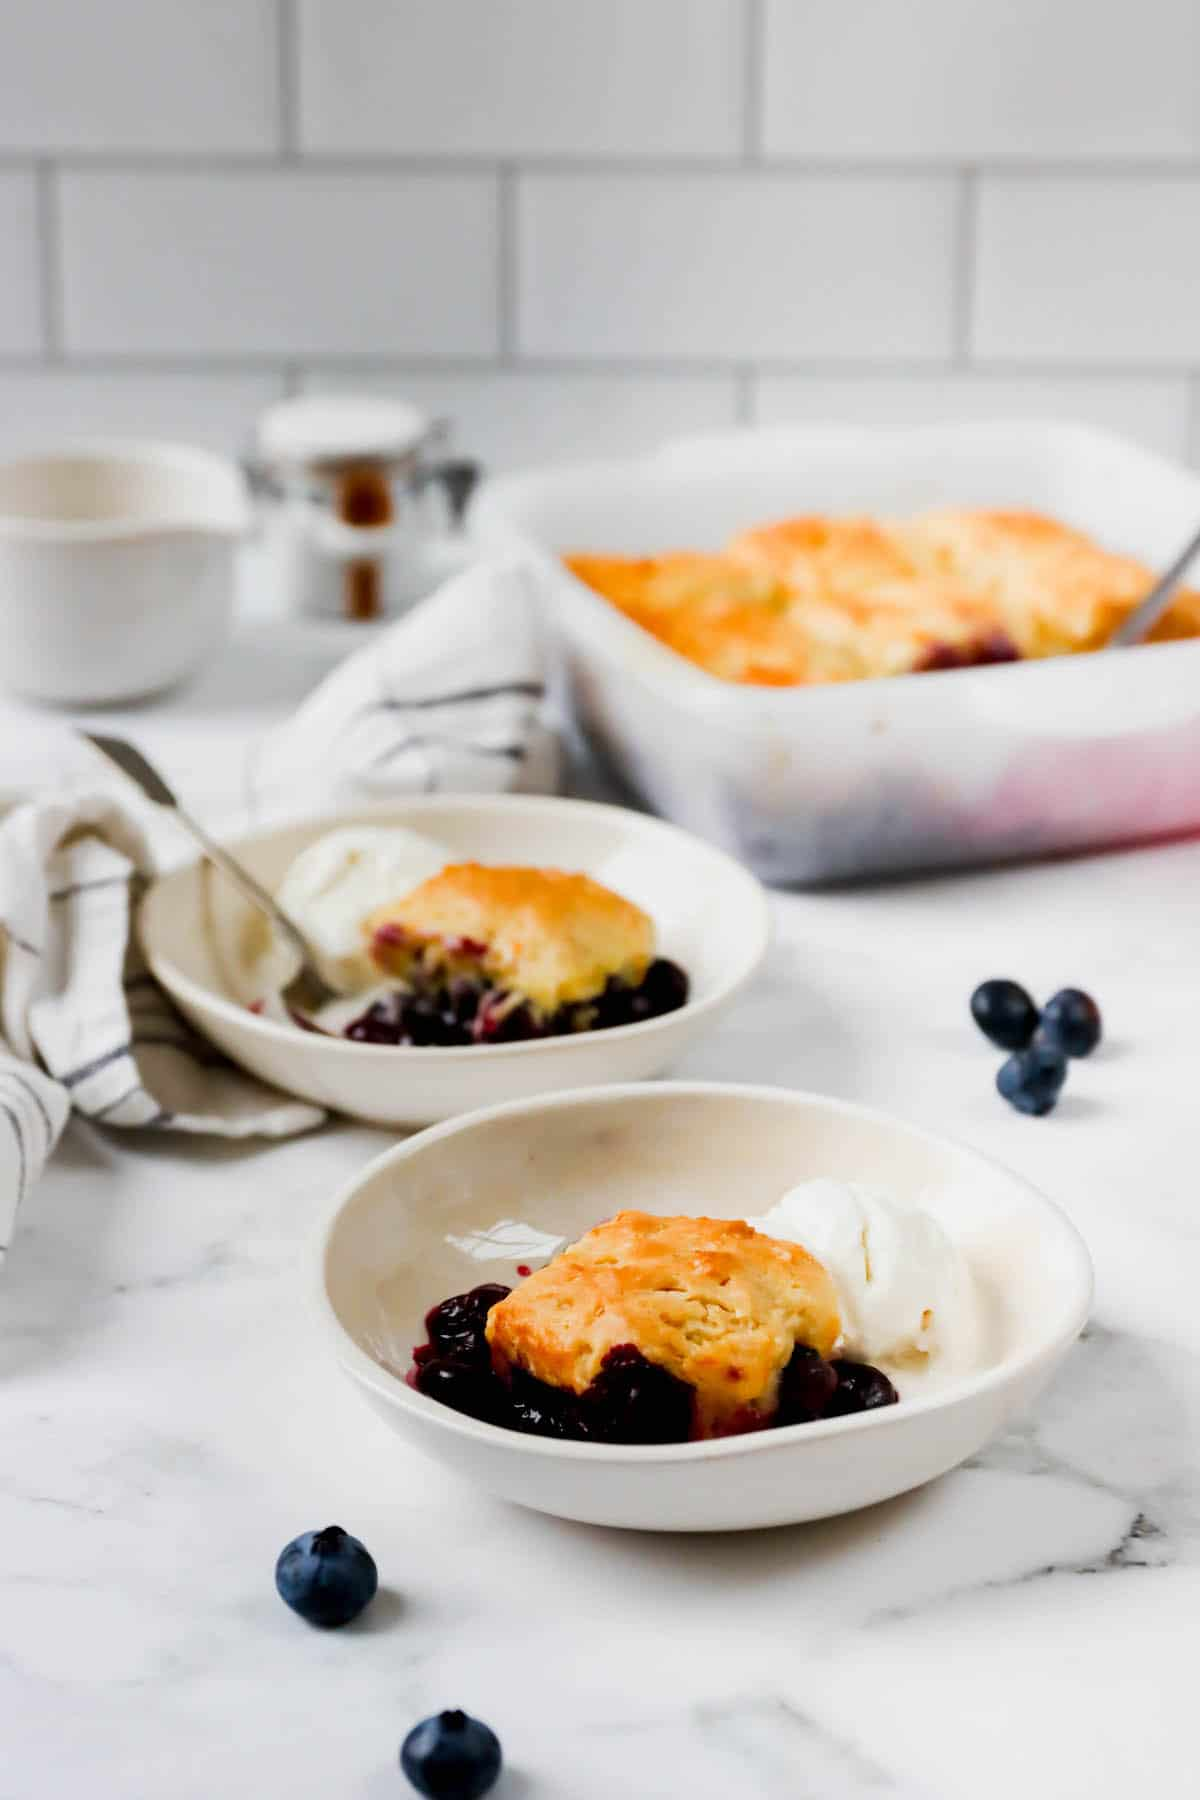 Two plates with blueberry cobbler and the baking dish in back